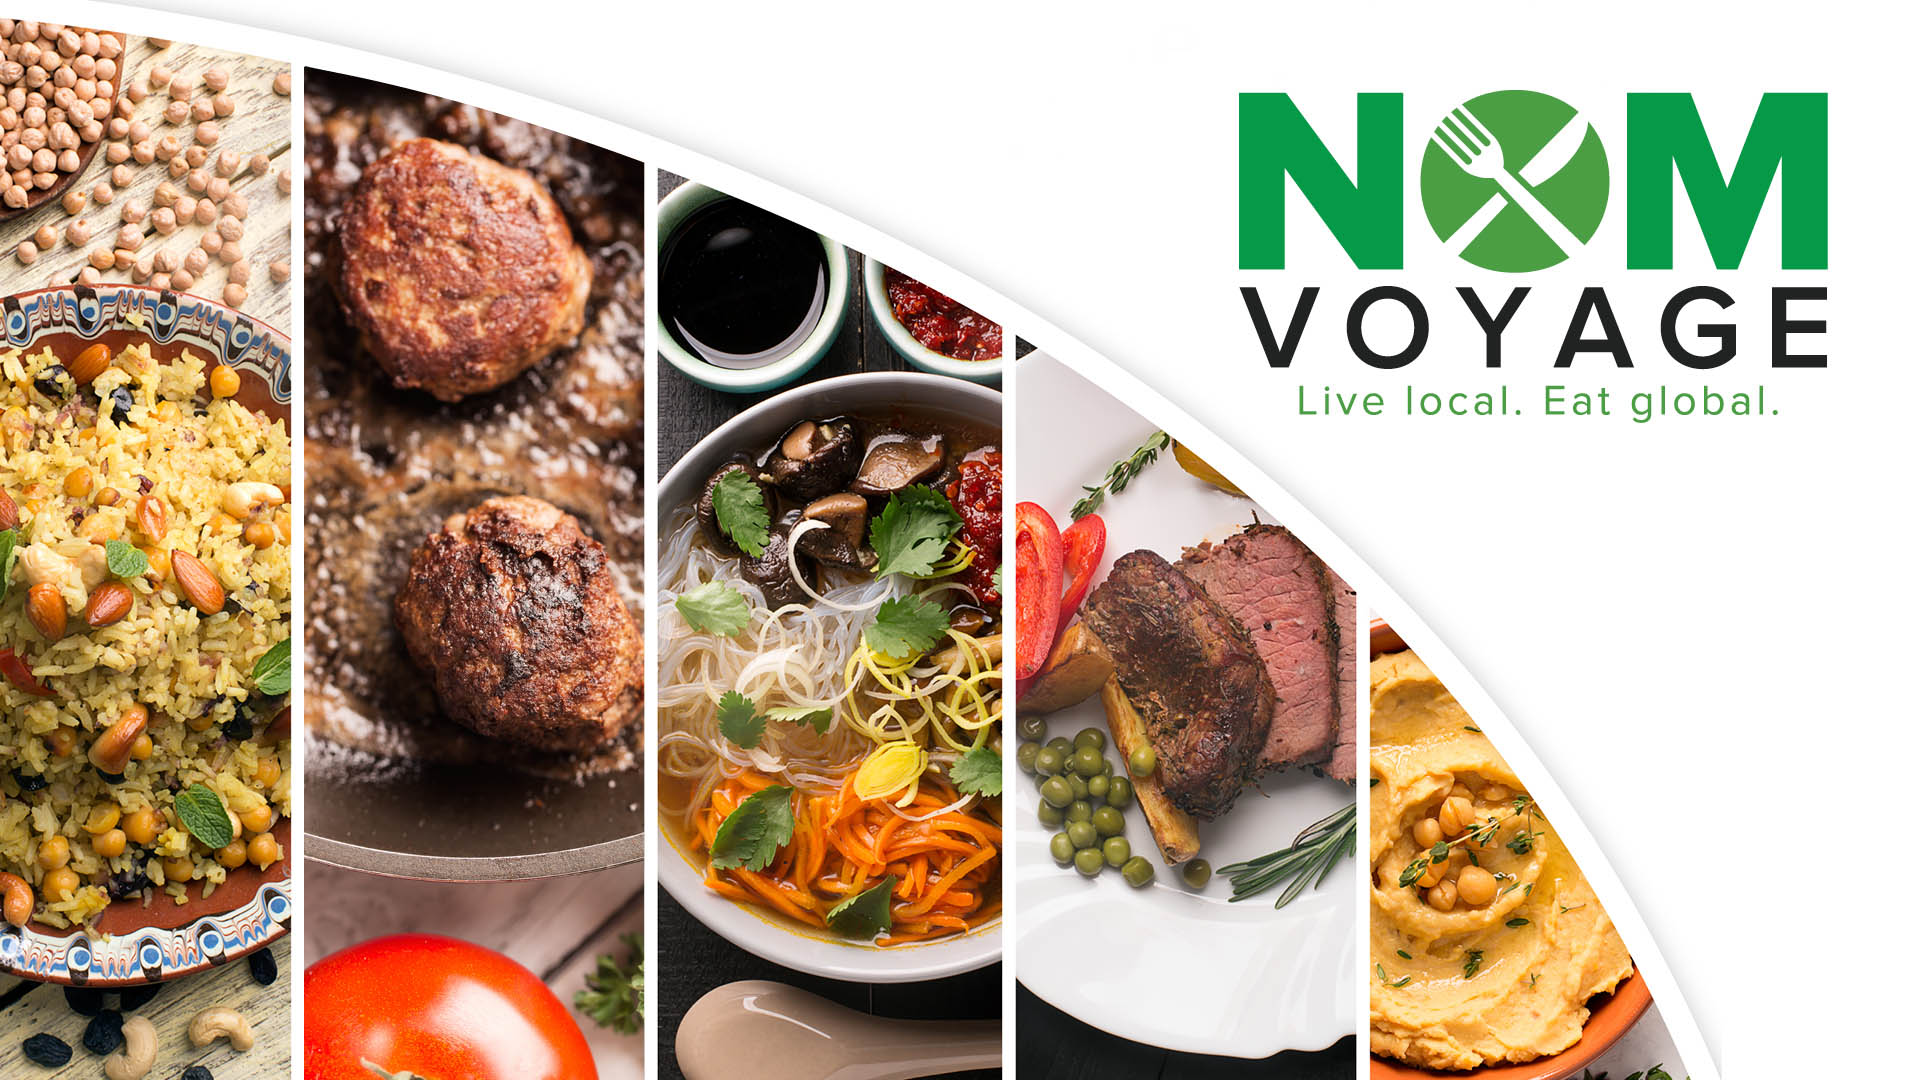 Nom Voyage Food Tour Contest